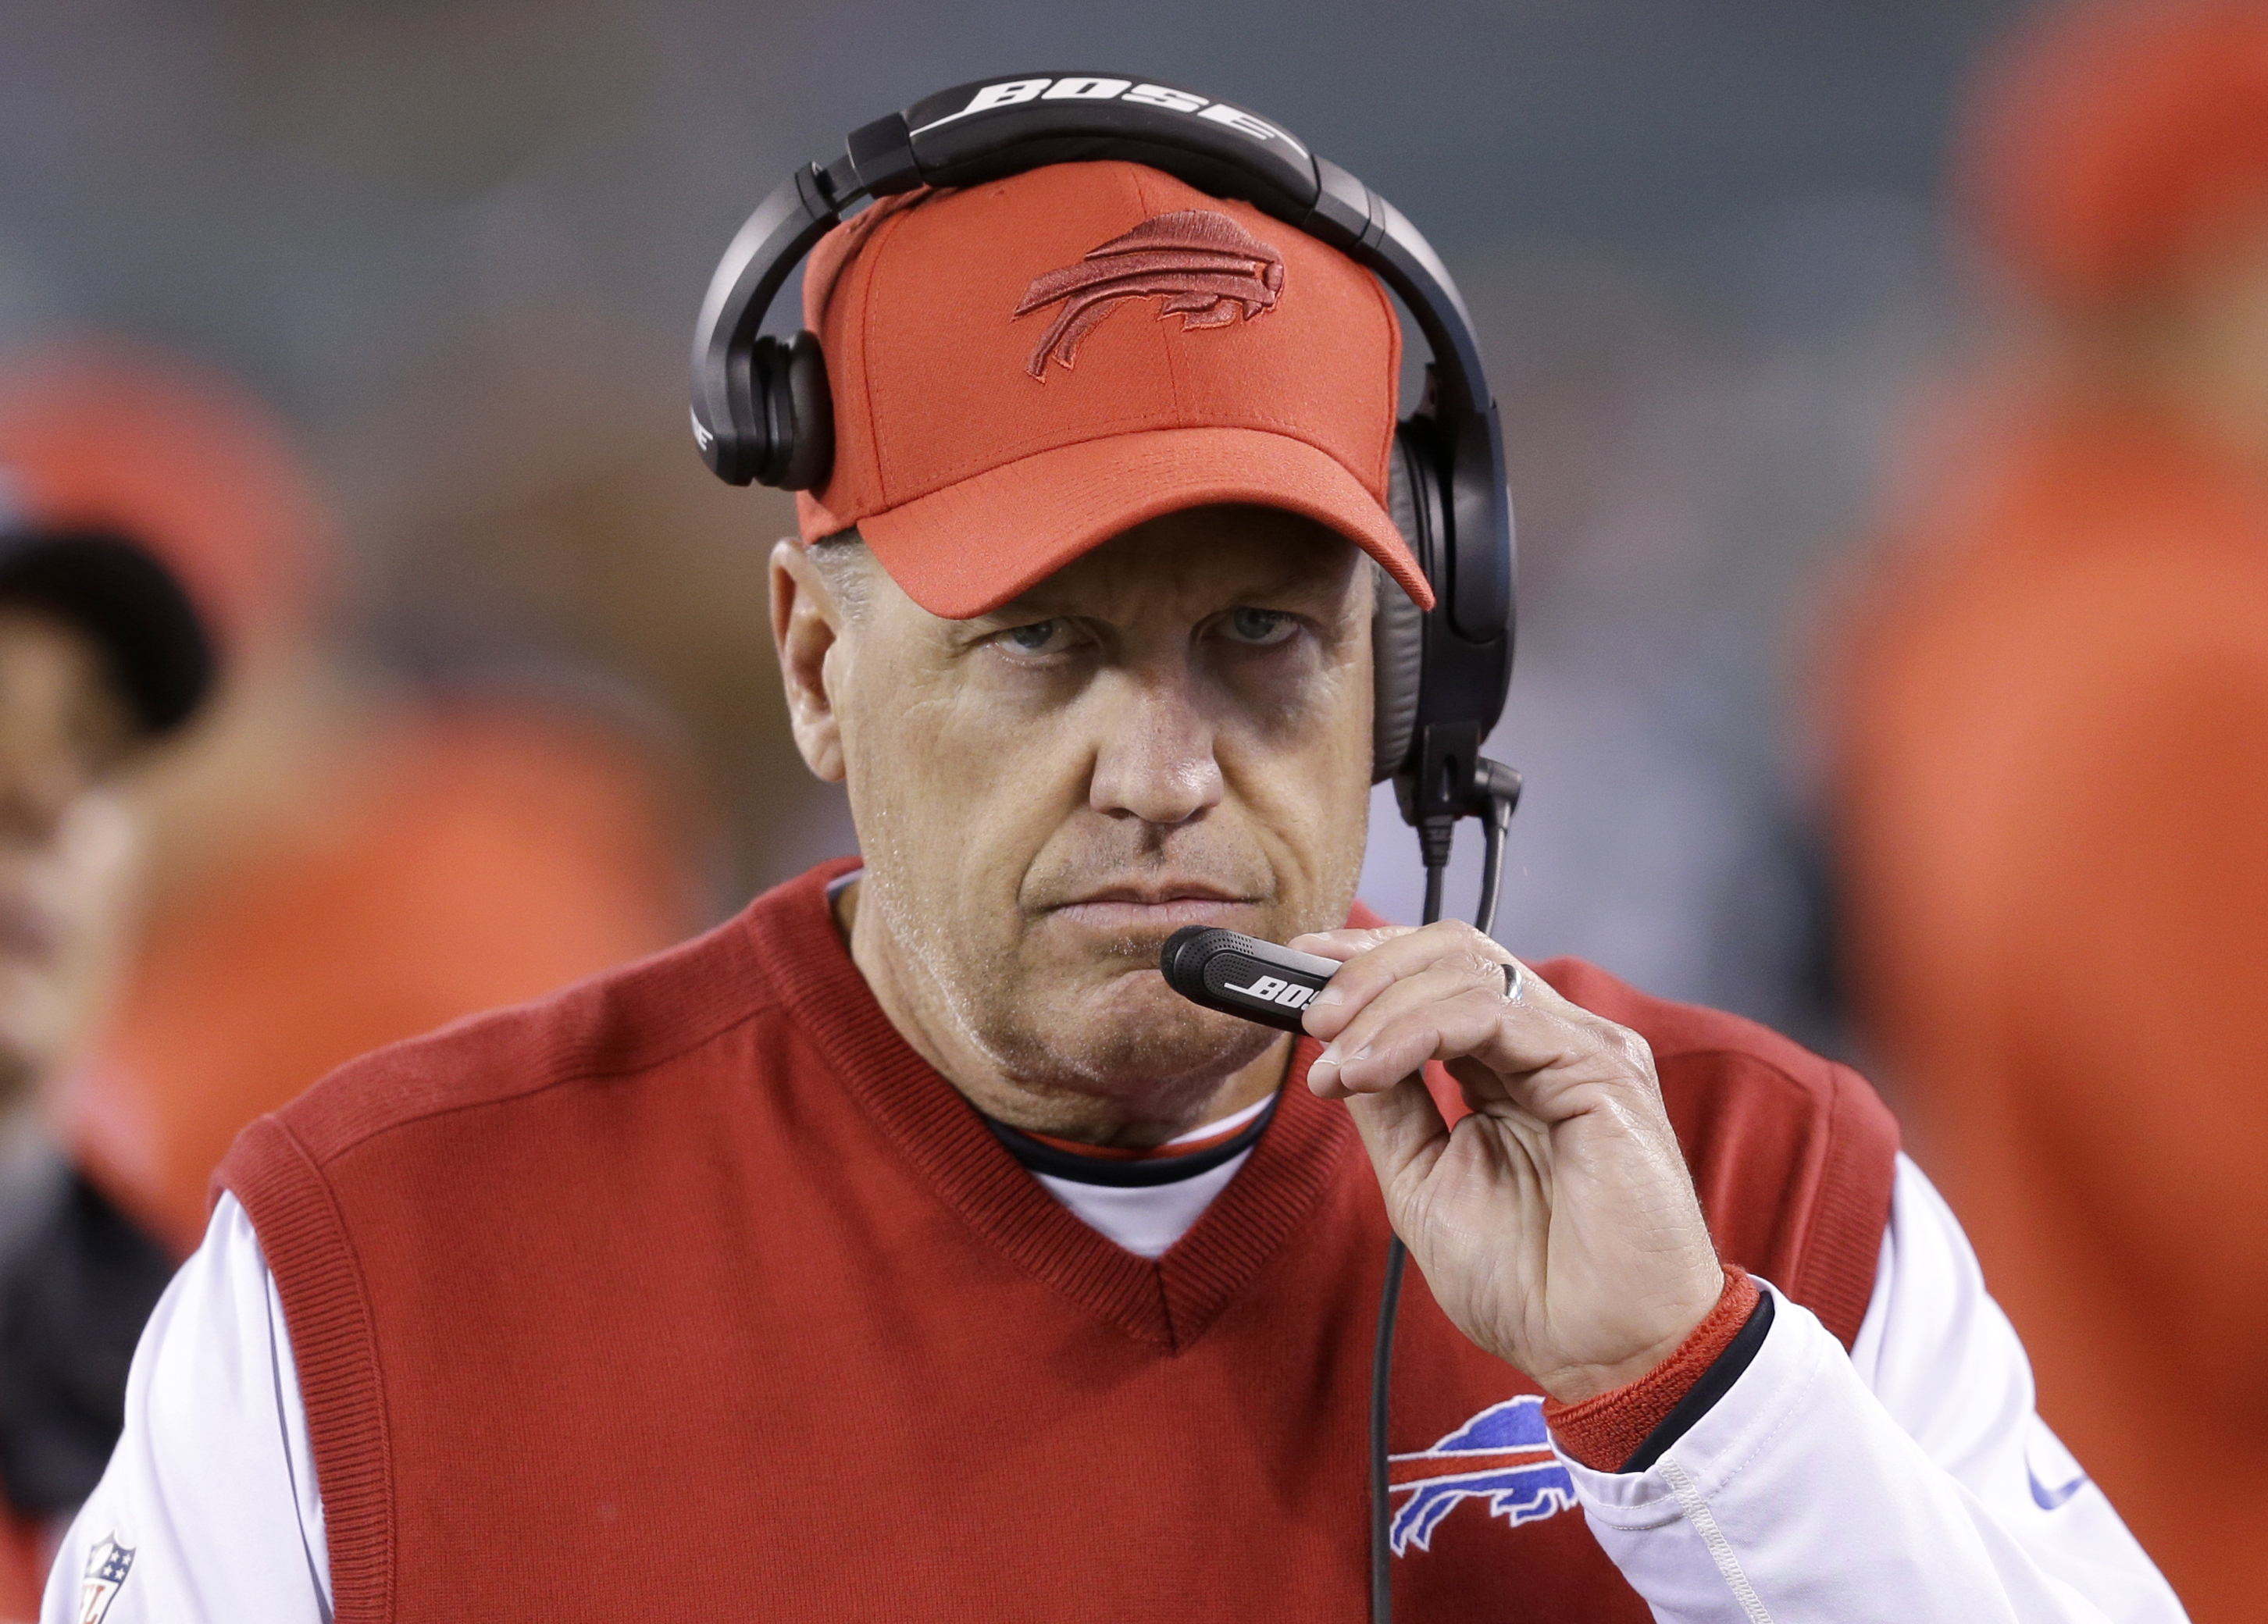 Buffalo Bills coach Rex Ryan waits for the start of his team's NFL football game against the New York Jets, Thursday, Nov. 12, 2015, in East Rutherford, N.J. (AP Photo/Seth Wenig)